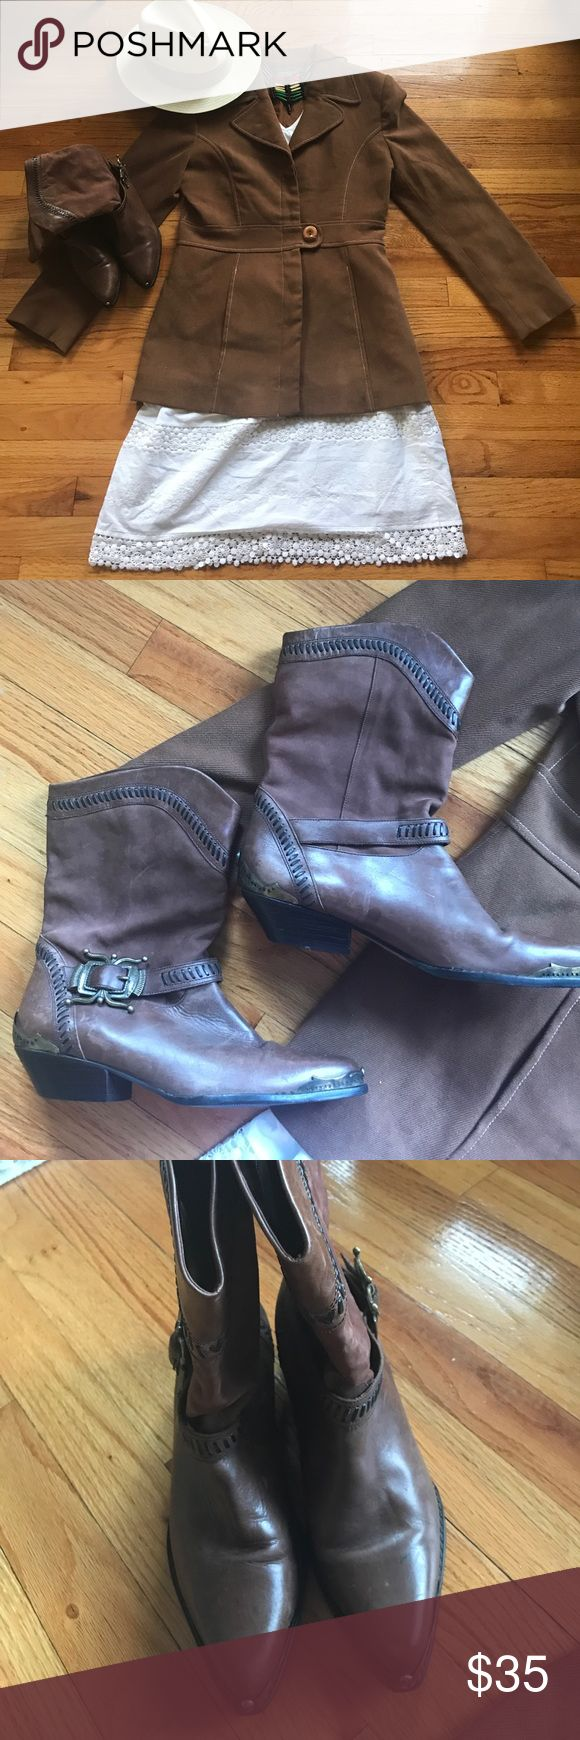 """Vintage Circle S brand cowboy boots Super cute brown Circle S cowboy boots in good used condition. These are vintage cowboy boots and have the expected wear and tear that a vintage cowboy boot should have. Lower portion is leather and upper portion is suede. I tried to Capture the few blemishes and photos but they didn't show well. Gorgeous! Height is 10"""" and  includes the 1 inch wooden heel. Vintage jacket, skirt and accessories Not included or available for purchase. Circle S Shoes"""